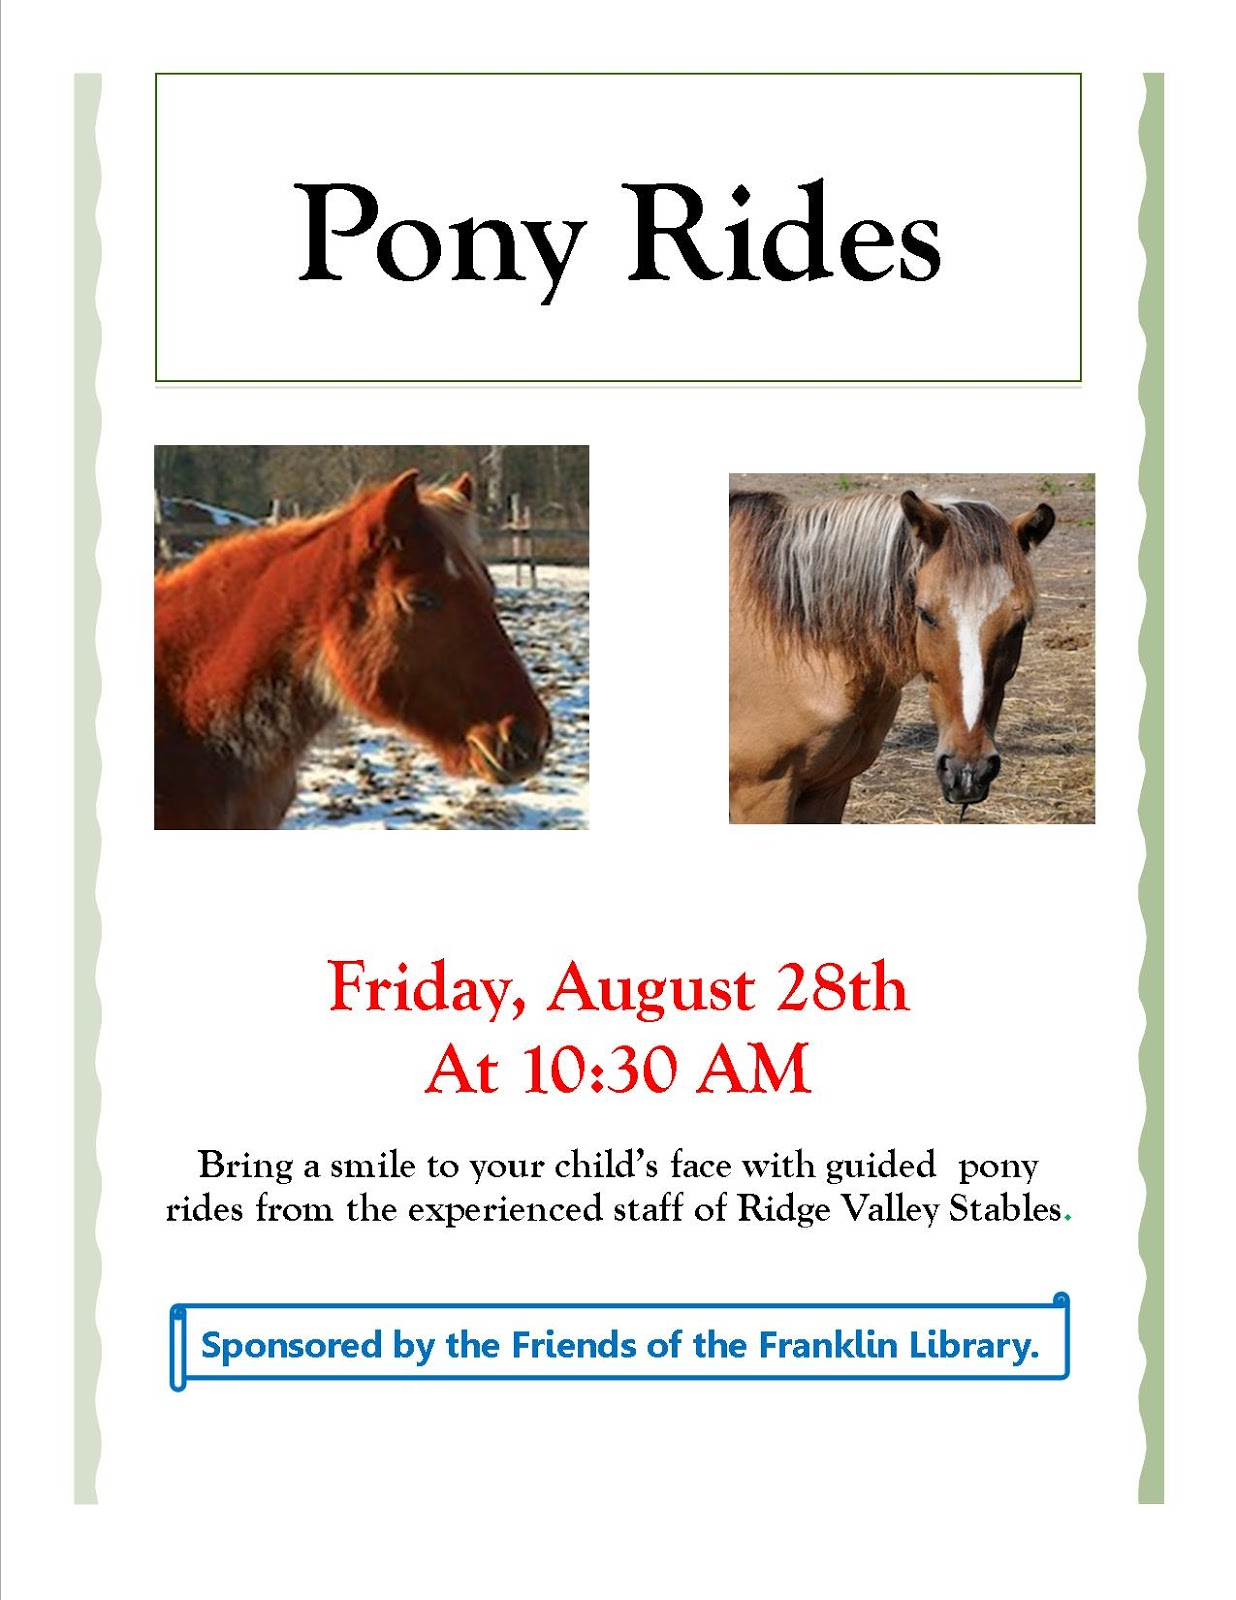 Pony rides at Franklin LIbrary, Aug 28th 10:30 AM